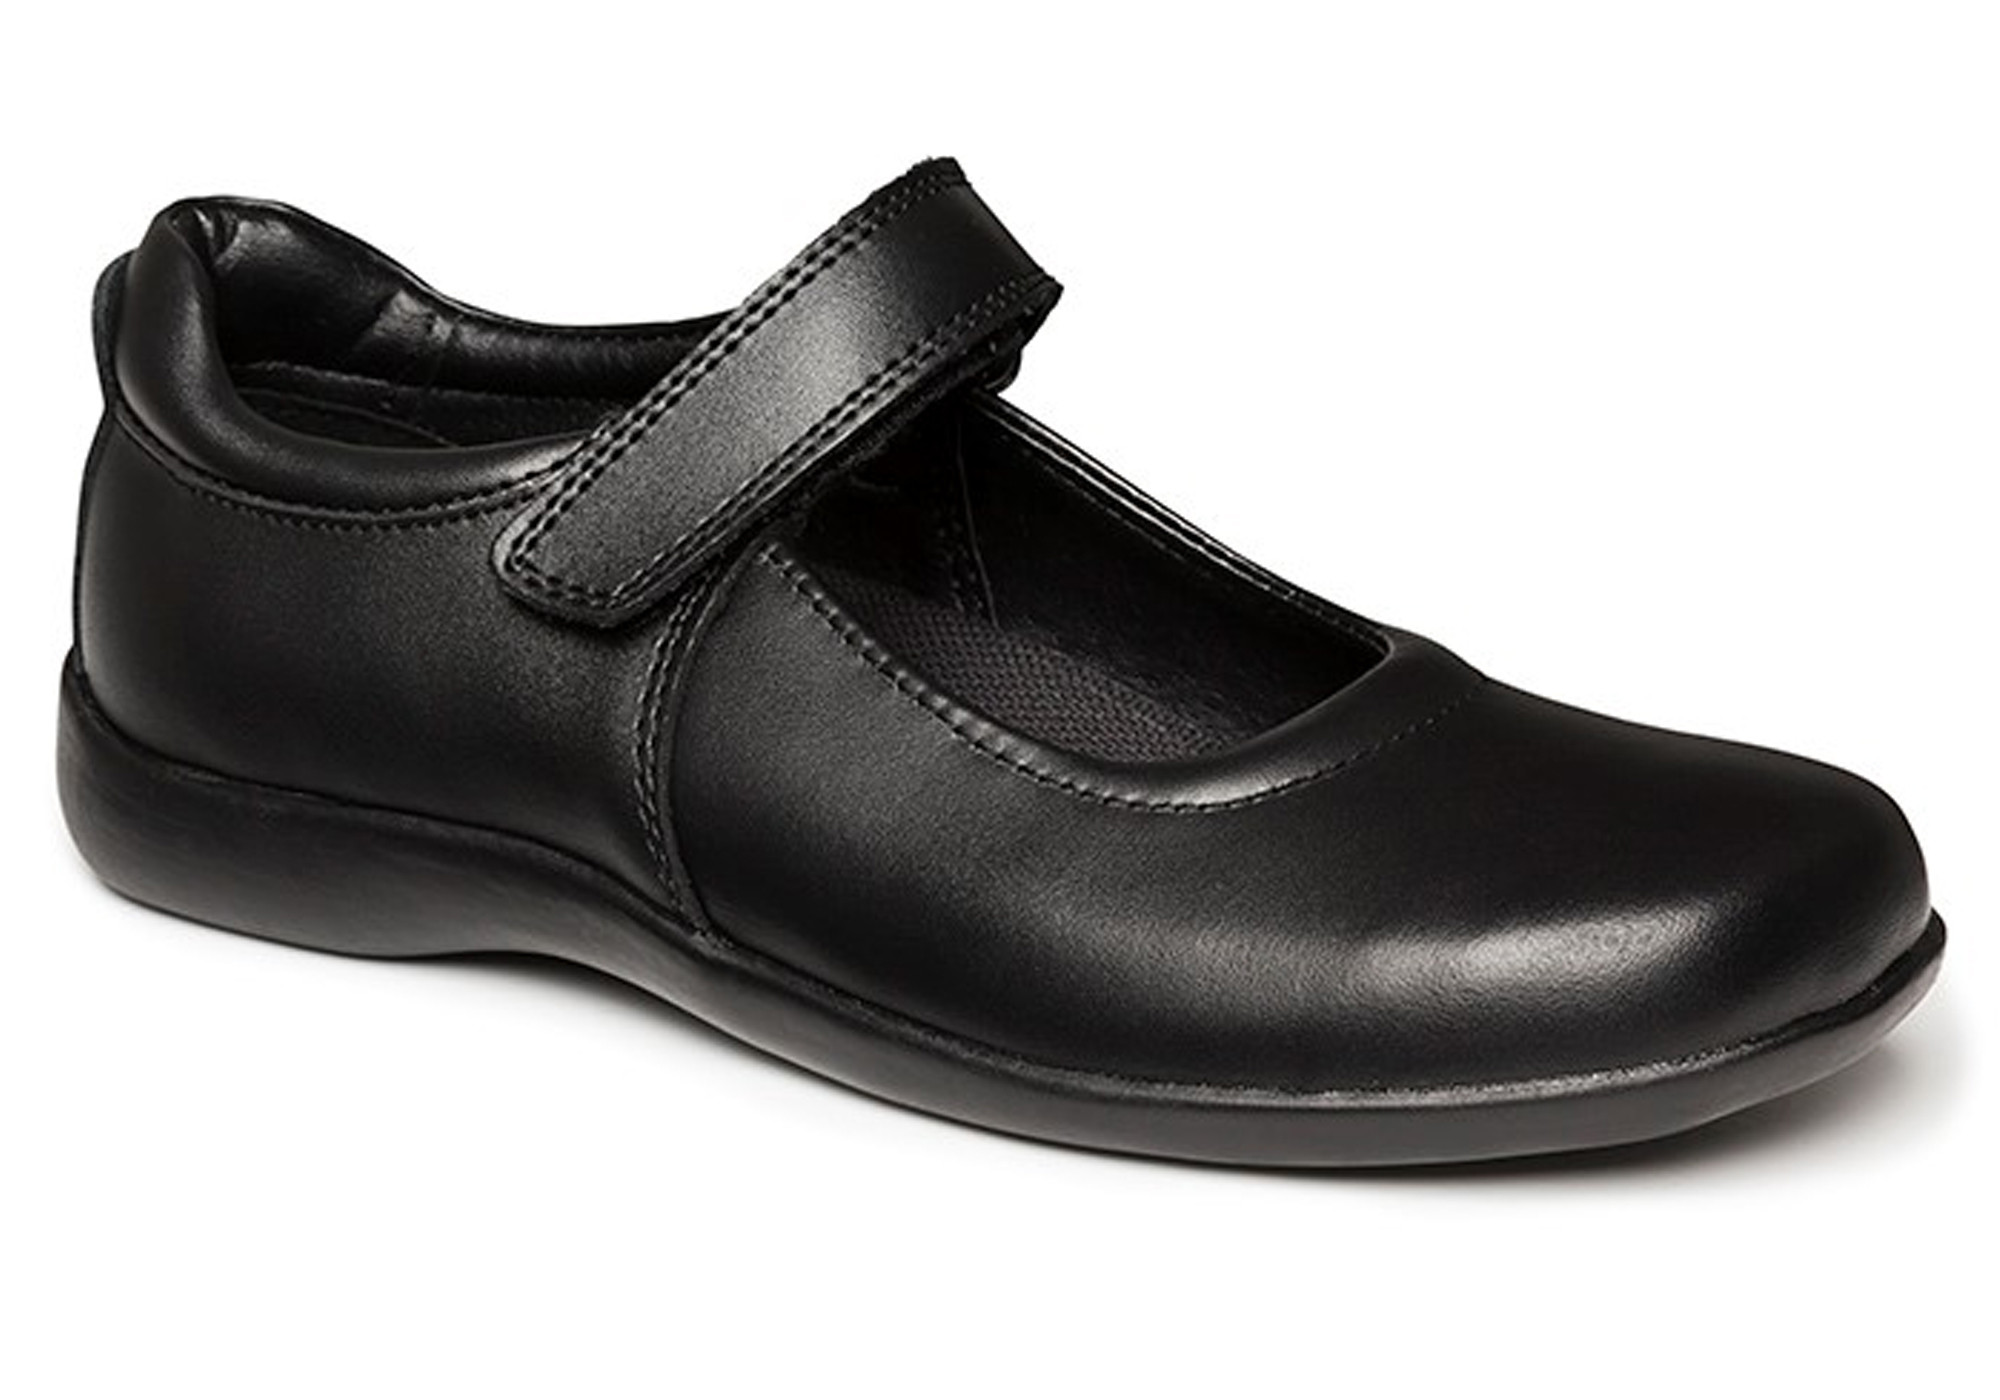 cool black school shoes - clarks elise kids girls leather school shoes EQNOISL